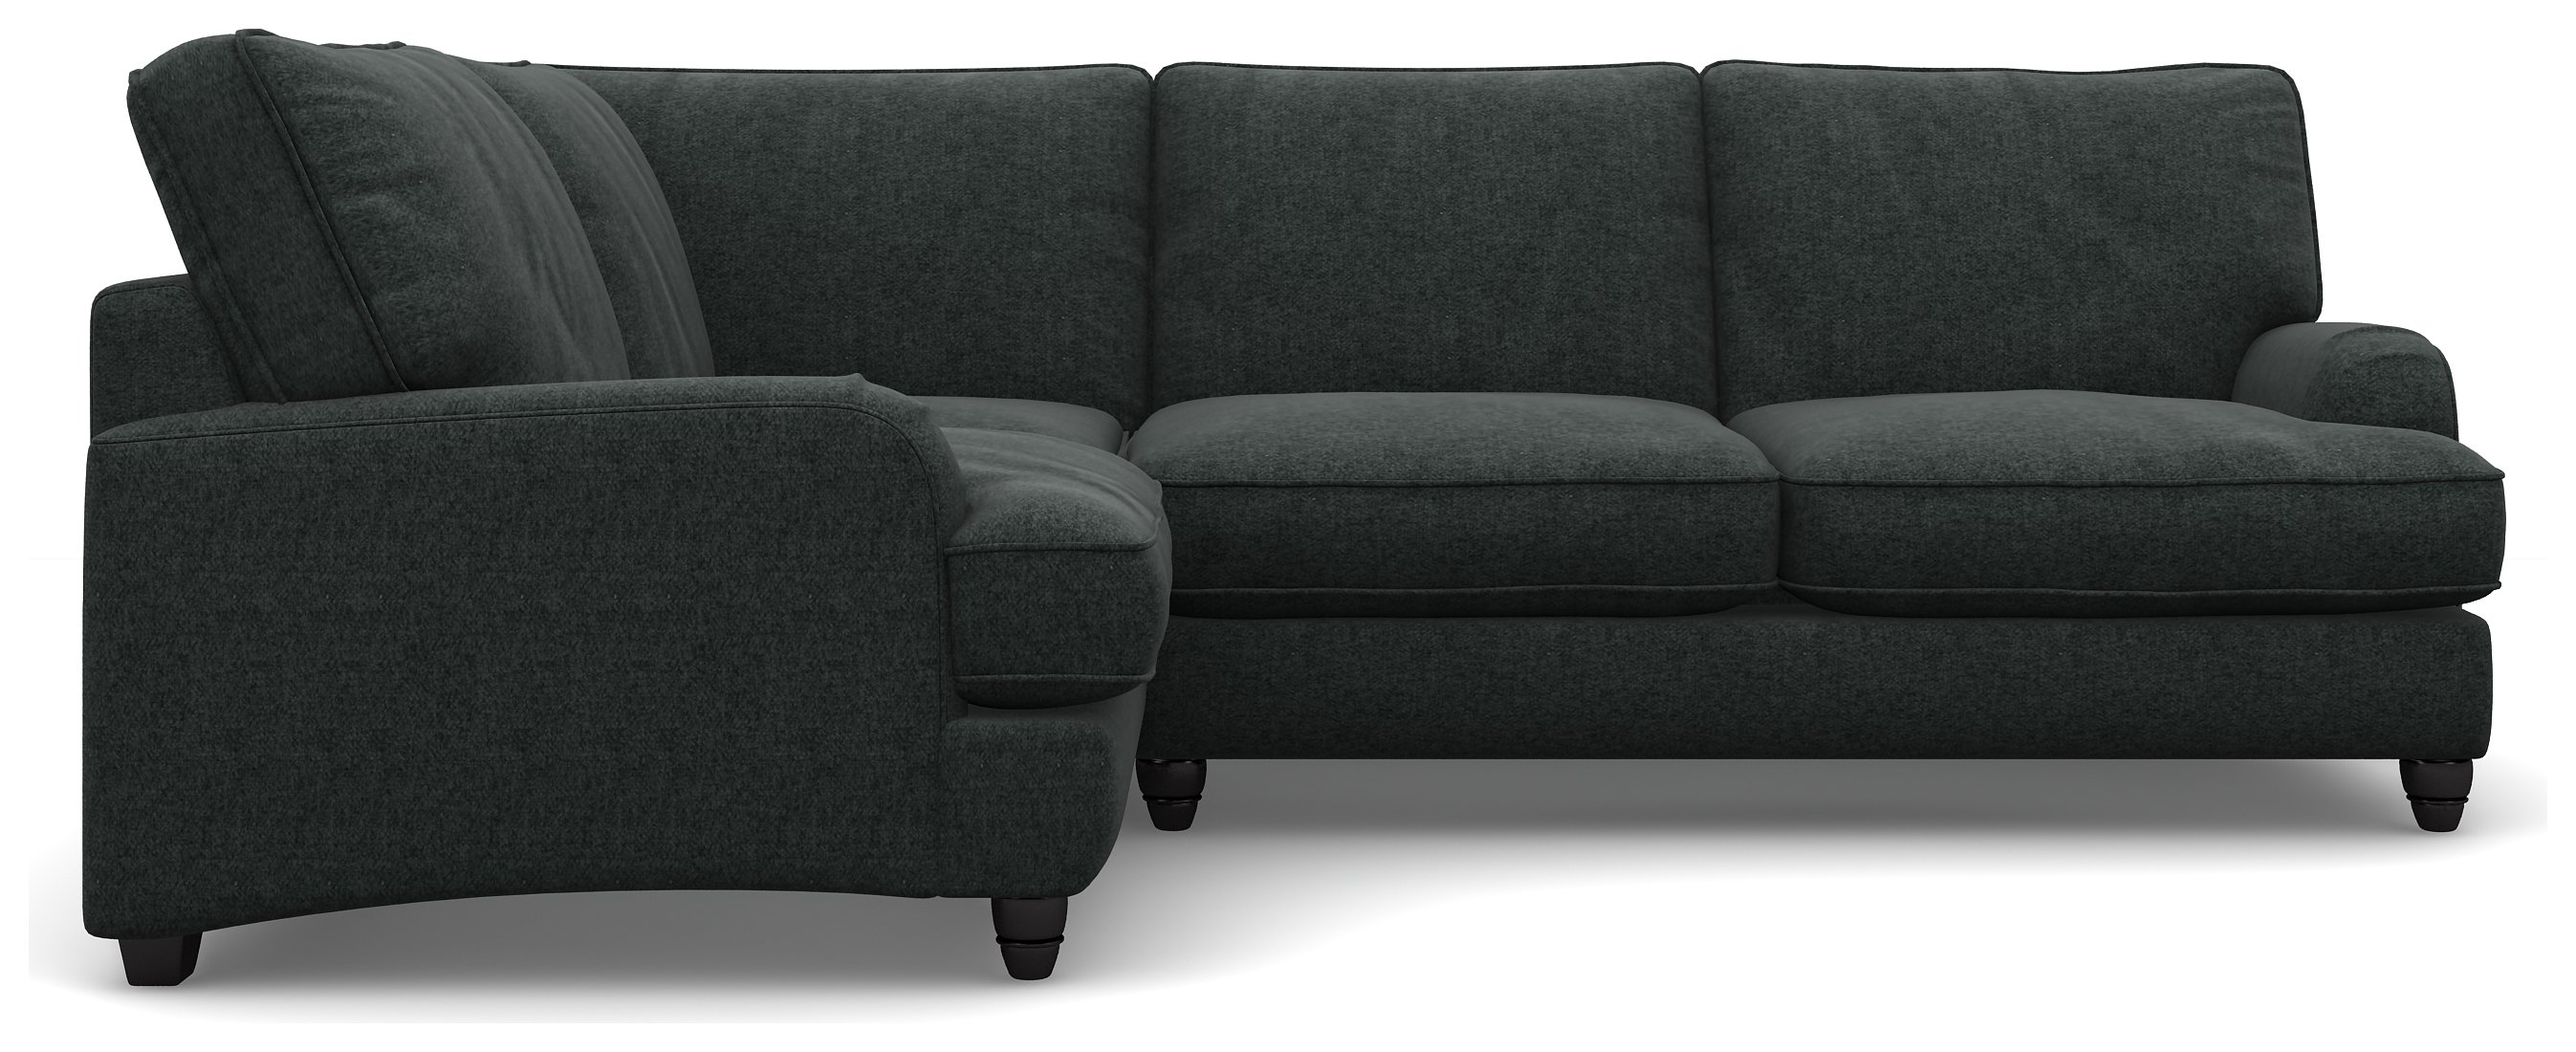 Heart of House Adeline Charcoal Tweed Fabric LH Corner Sofa